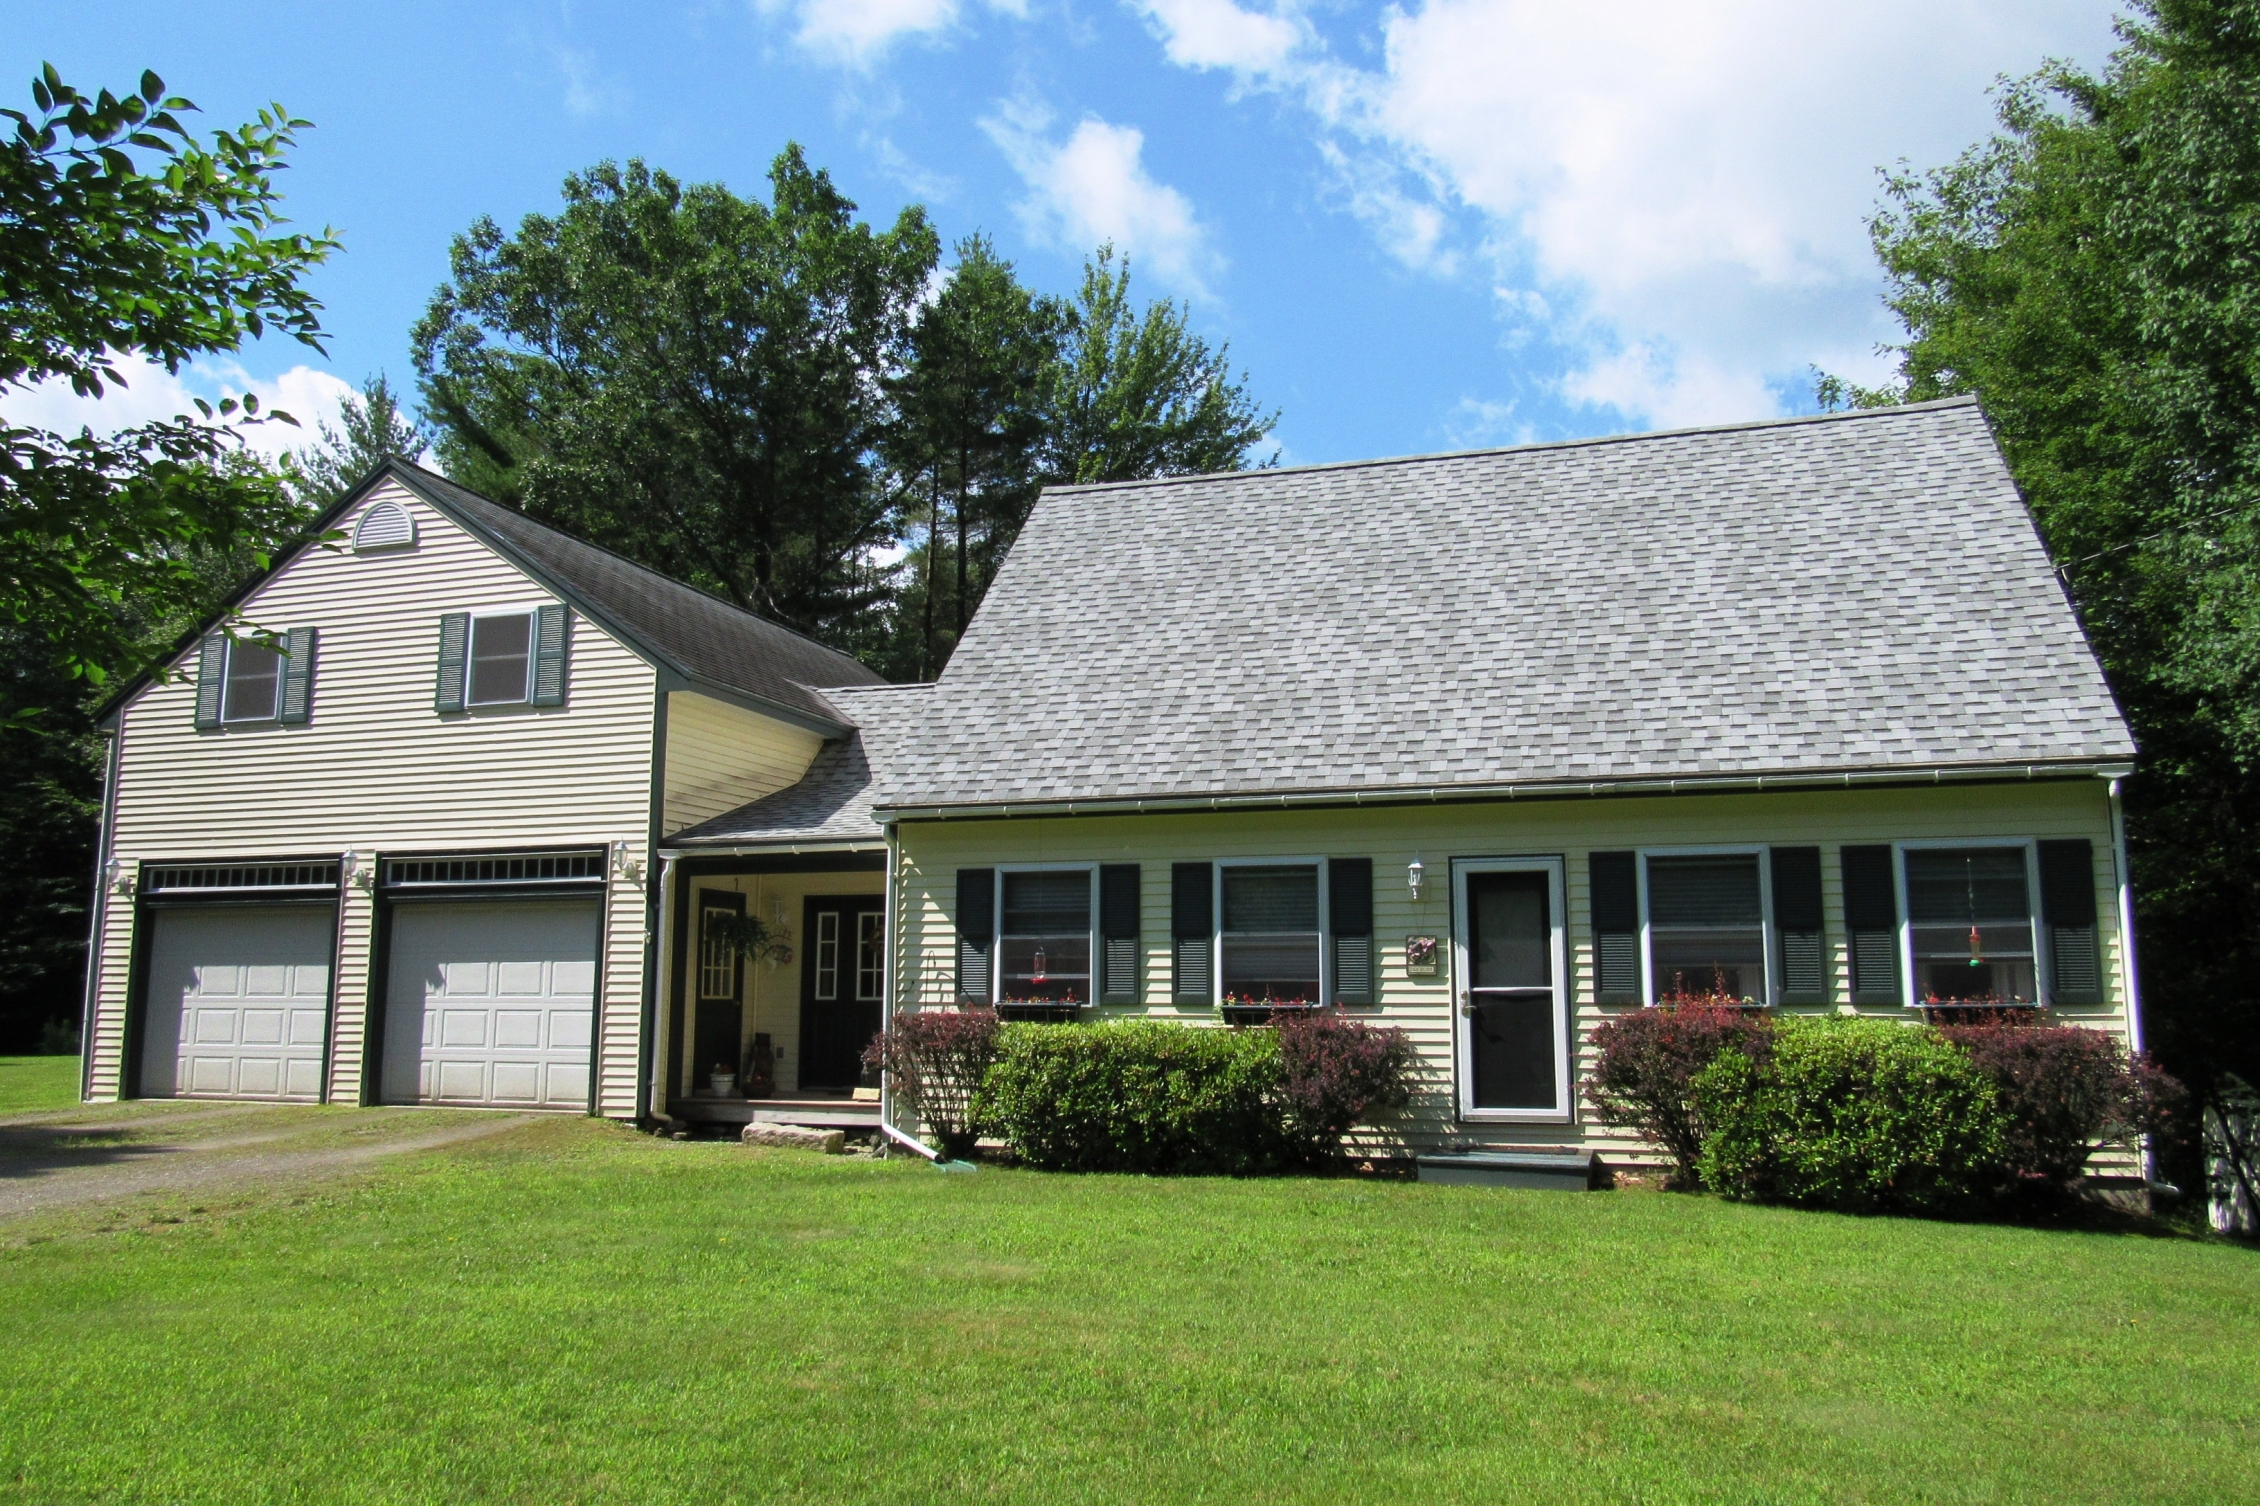 Single Family Home for Sale at 42 Arron Road, Piermont 42 Arron Rd Piermont, New Hampshire 03779 United States